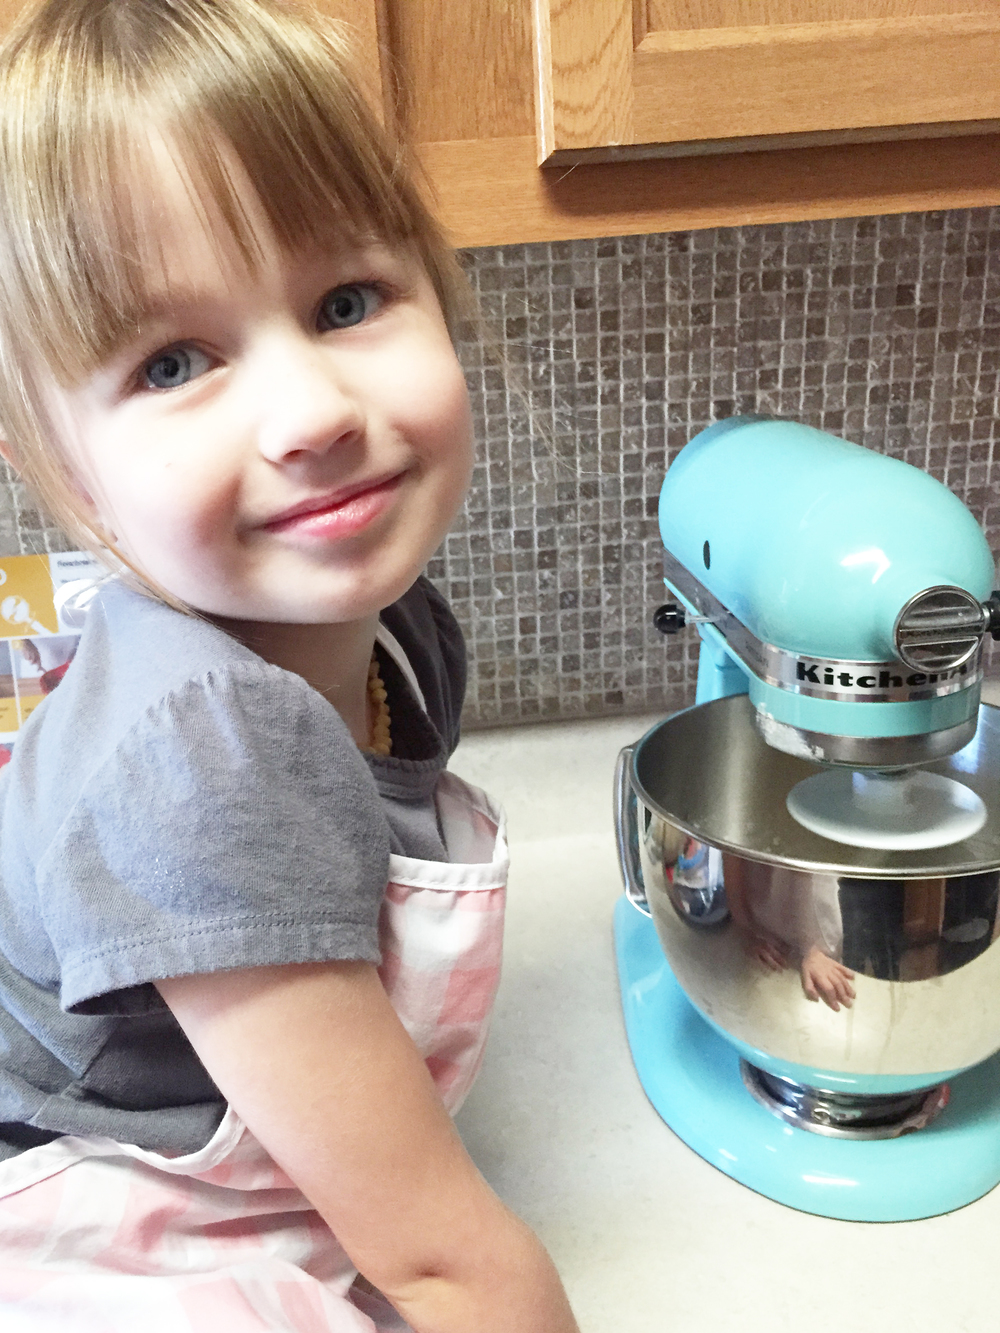 My handy kitchen helper. Hello, beautiful girl! ... Yep. Even has her pink apron on